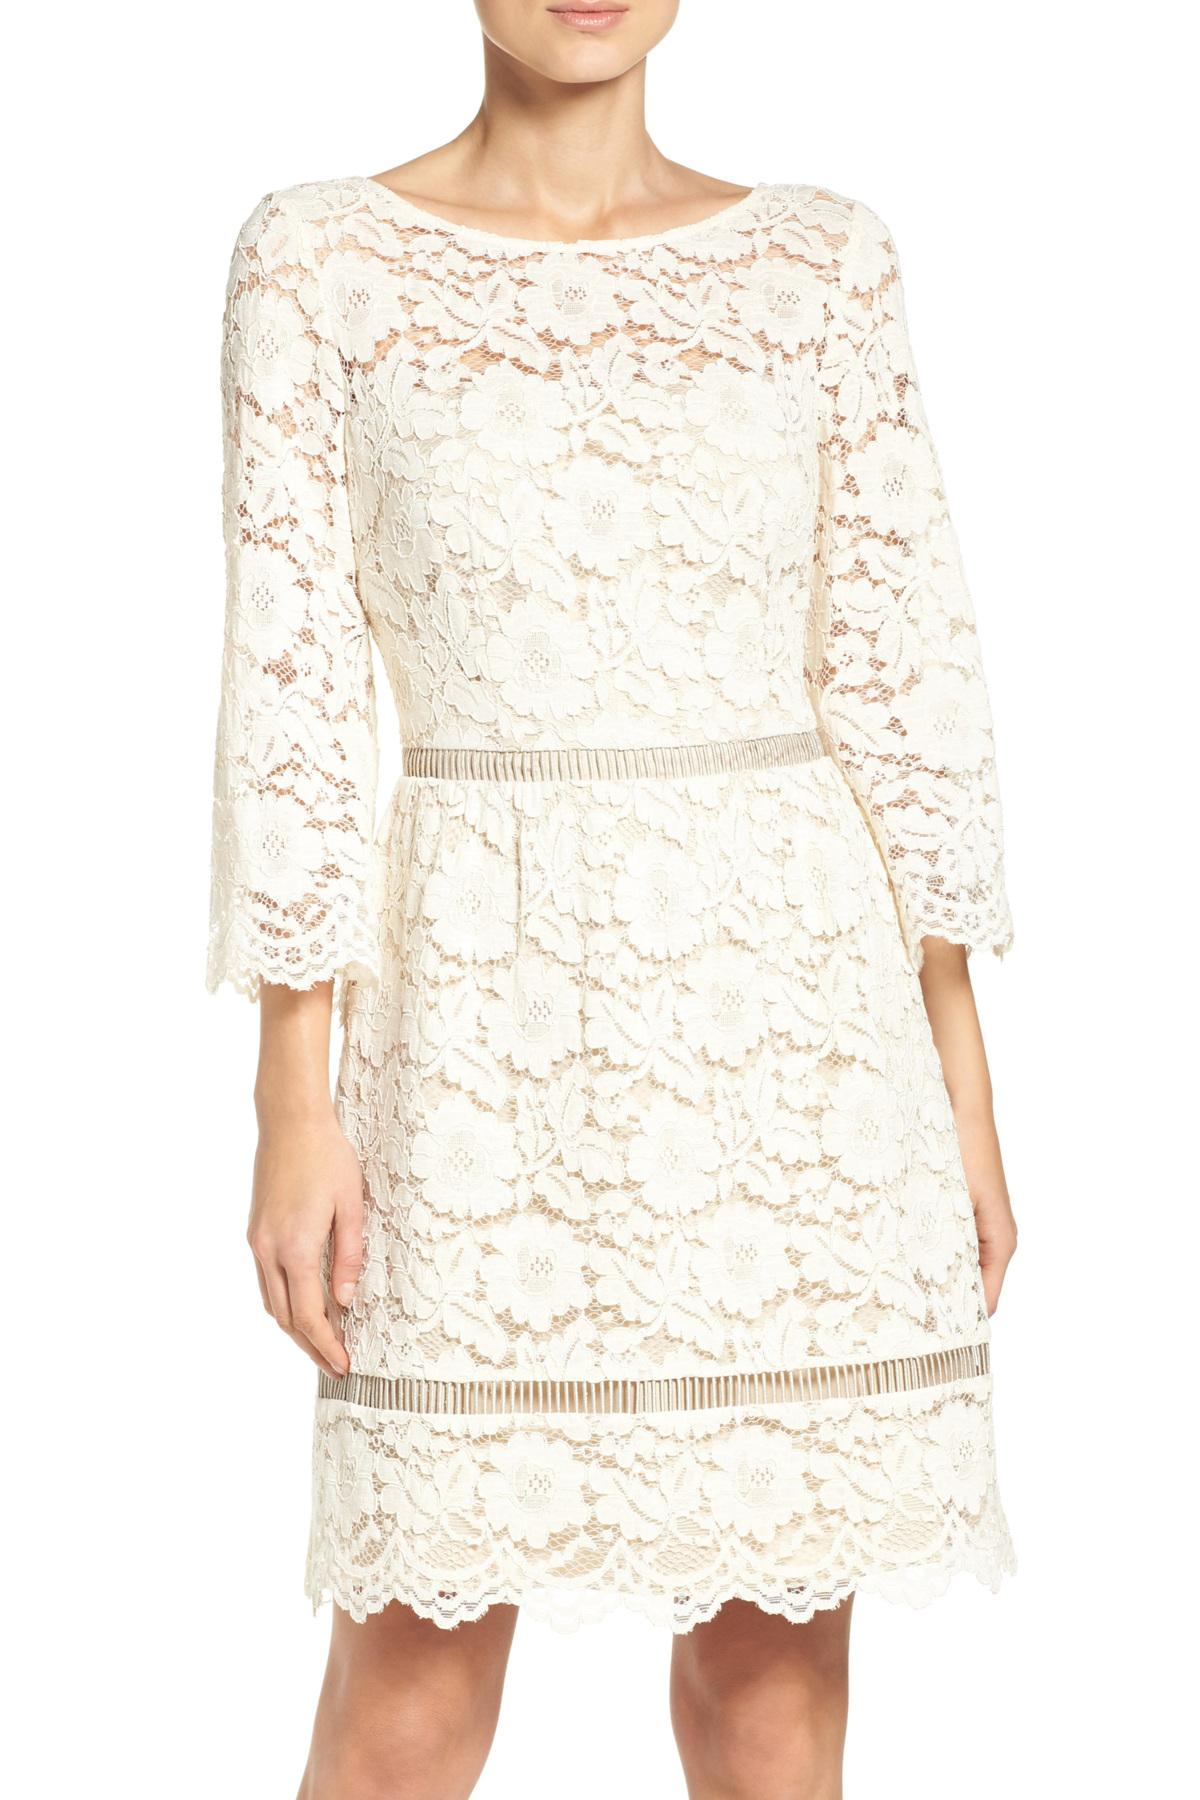 Lyst Vince Camuto Lace Fit Amp Flare Dress In White